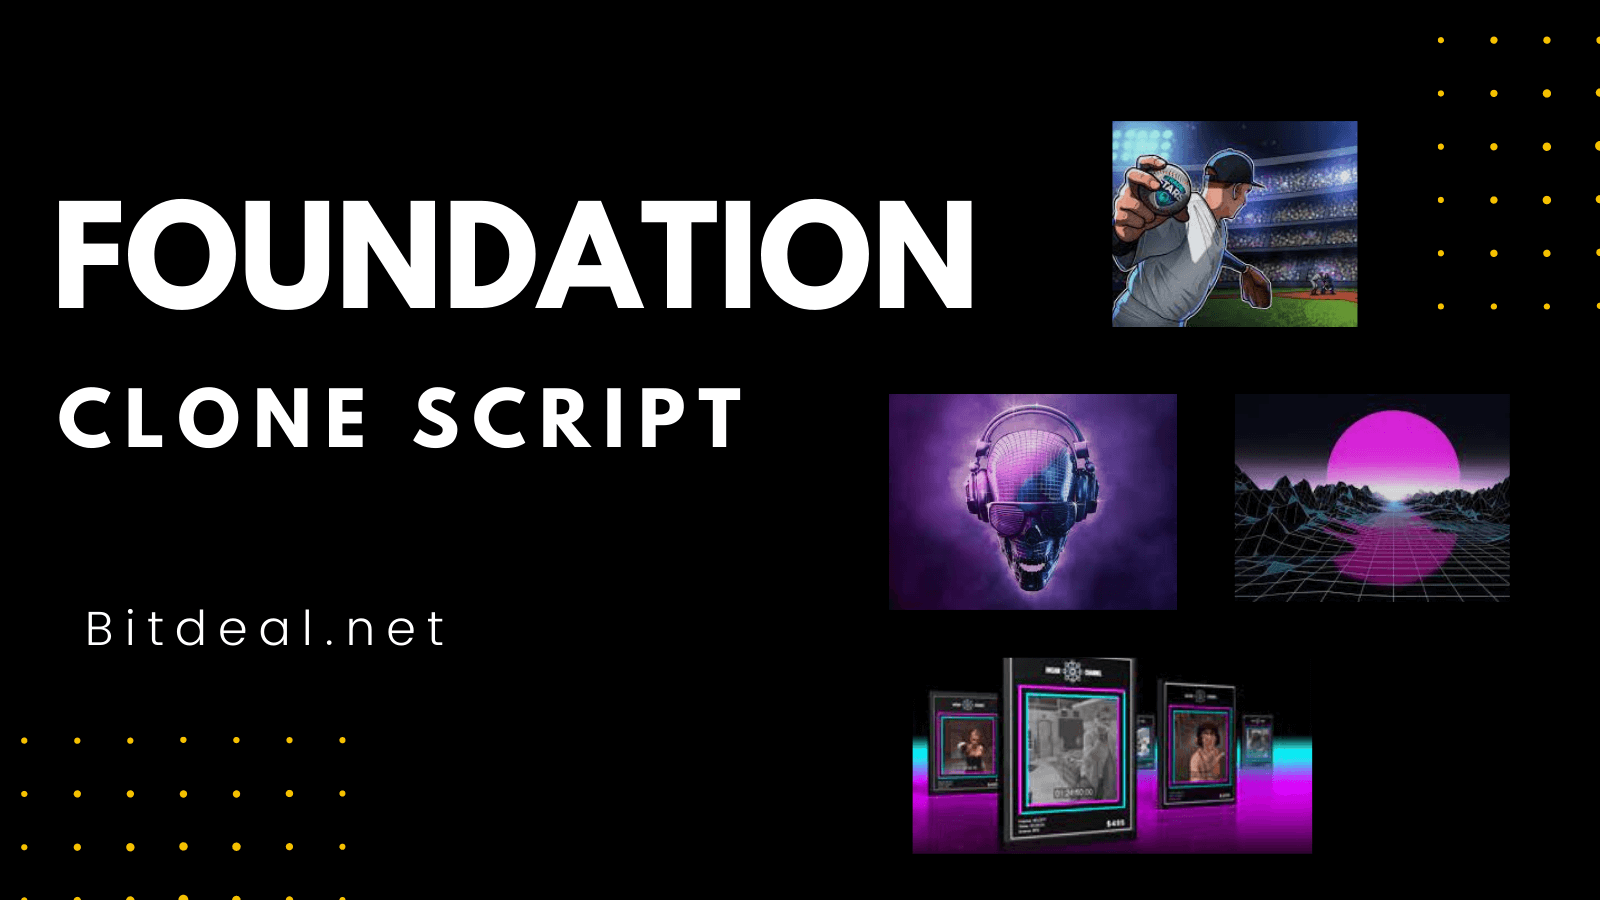 Foundation Clone Script - The Perfect Strategy to build a lucrative NFT Marketplace like Foundation